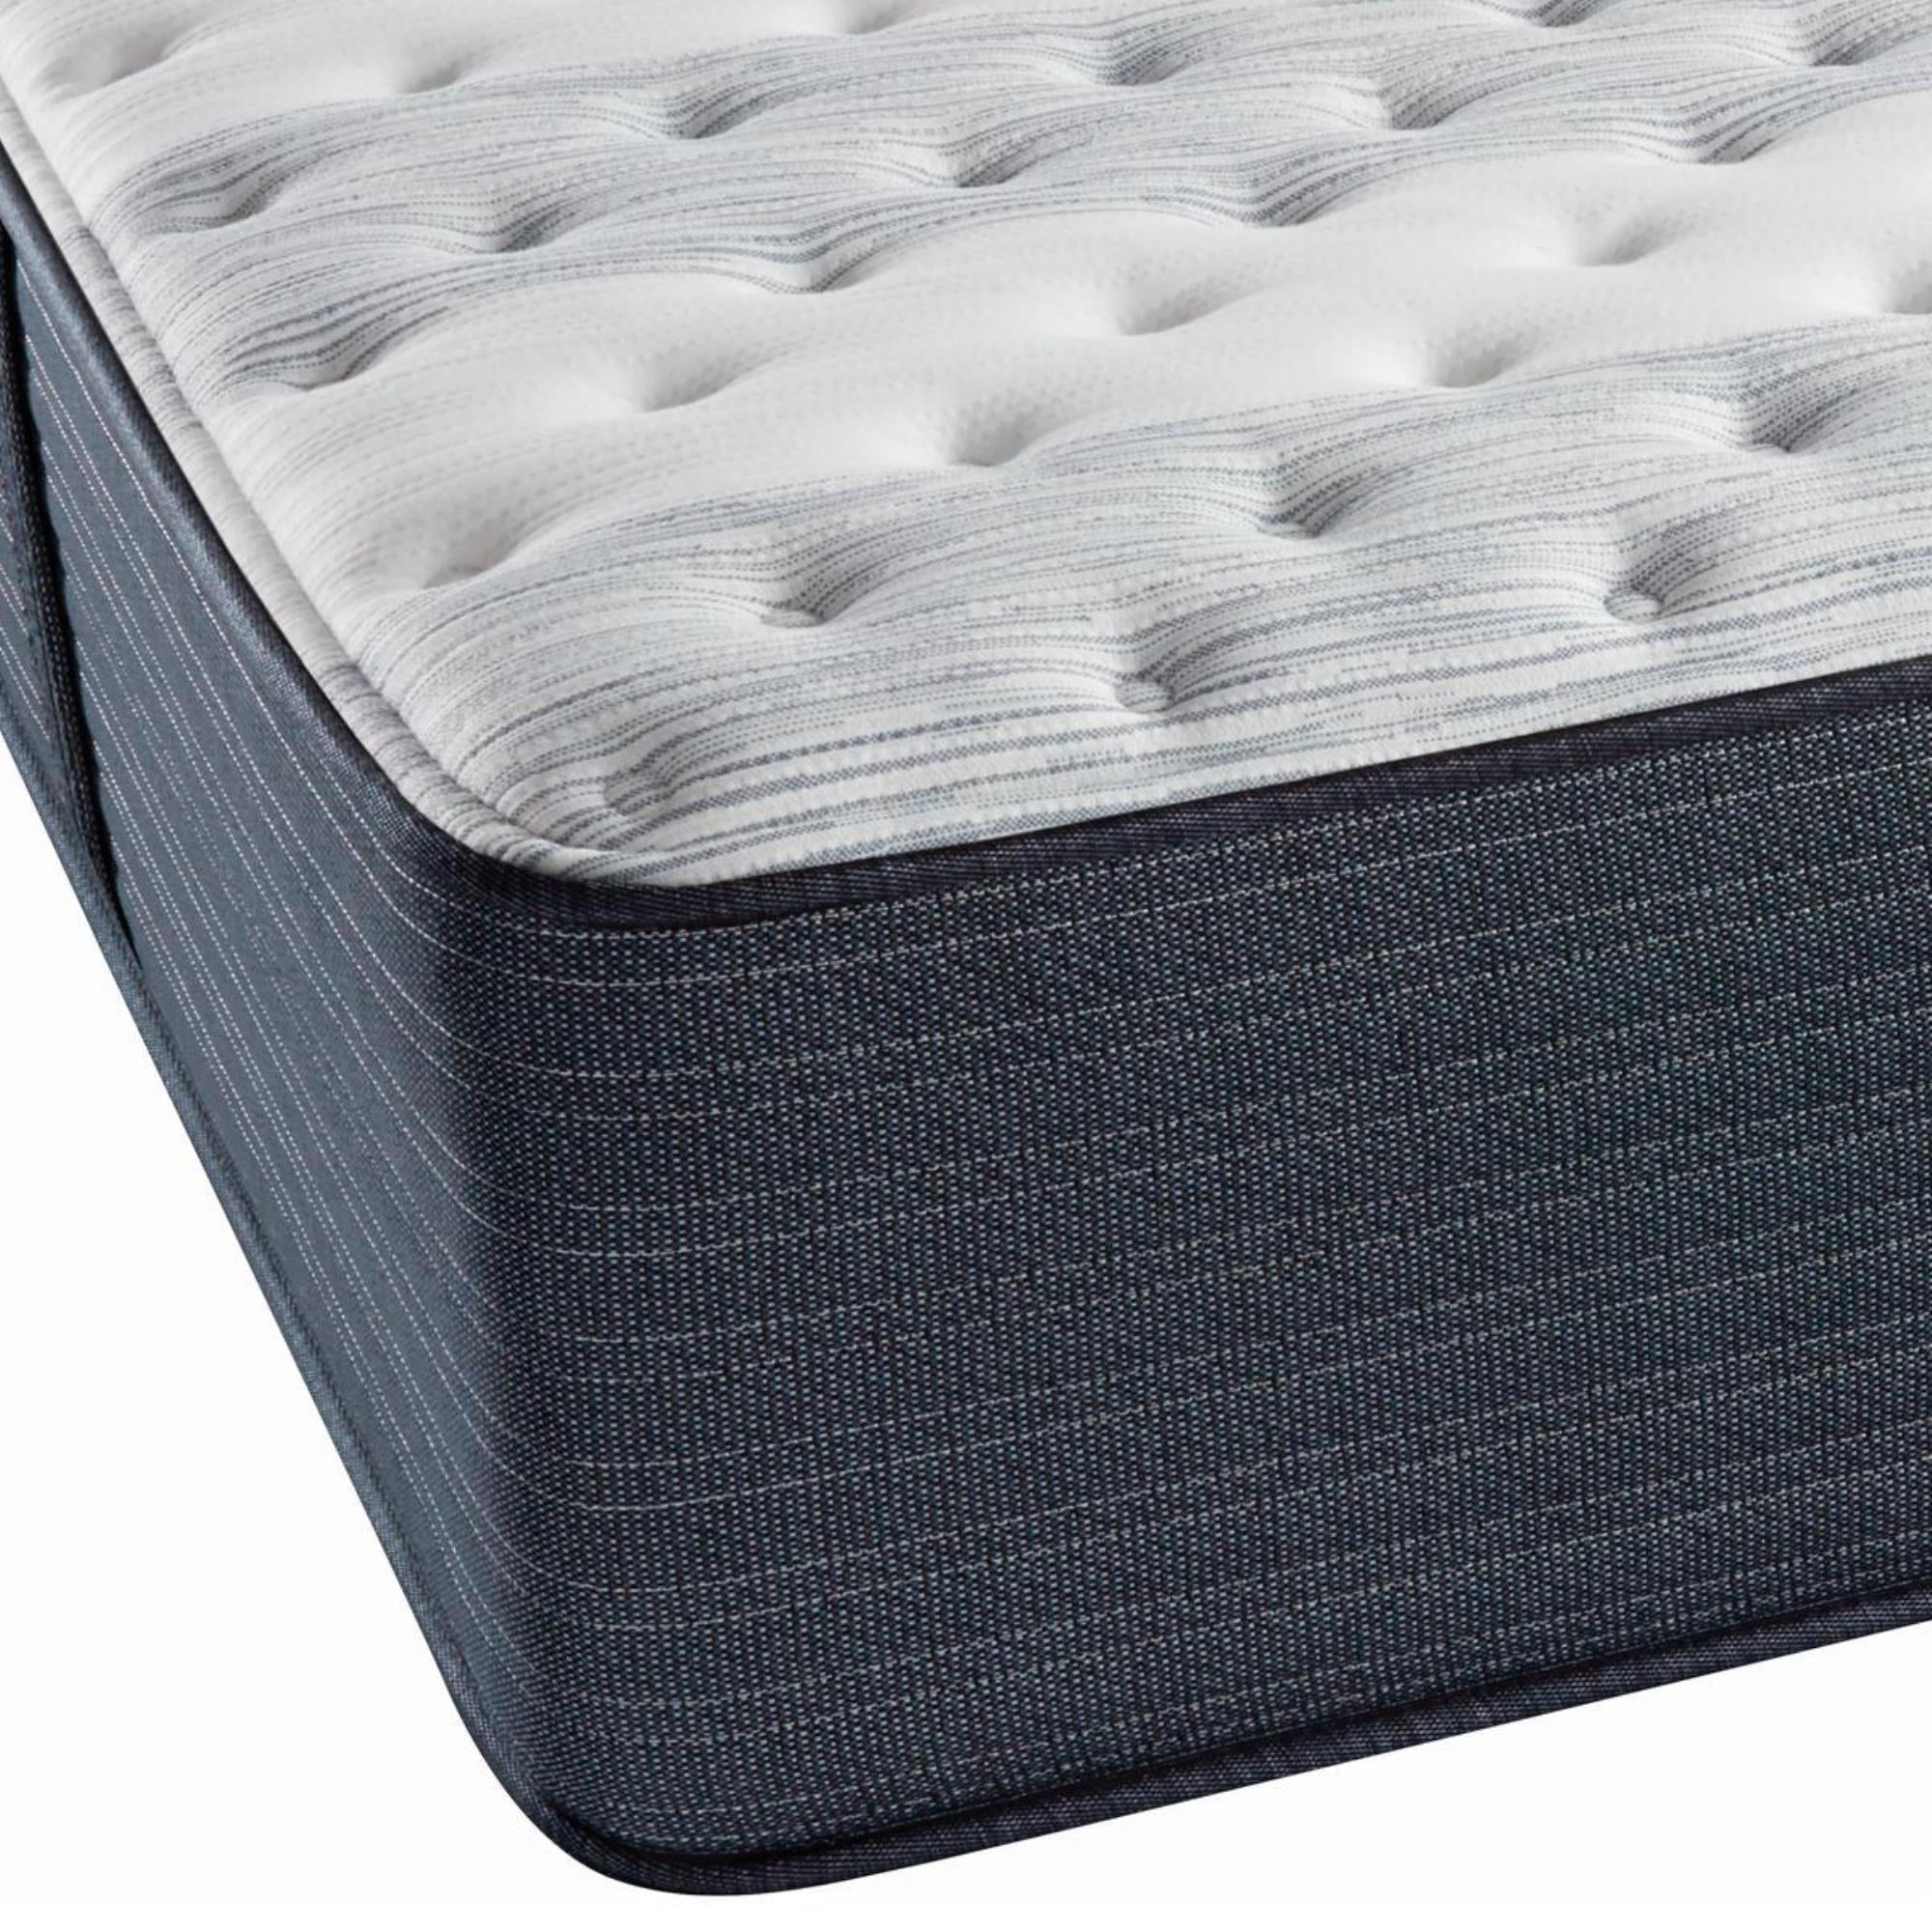 Simmonds Beauty Rest Clover Springs™ Extra Firm Mattress